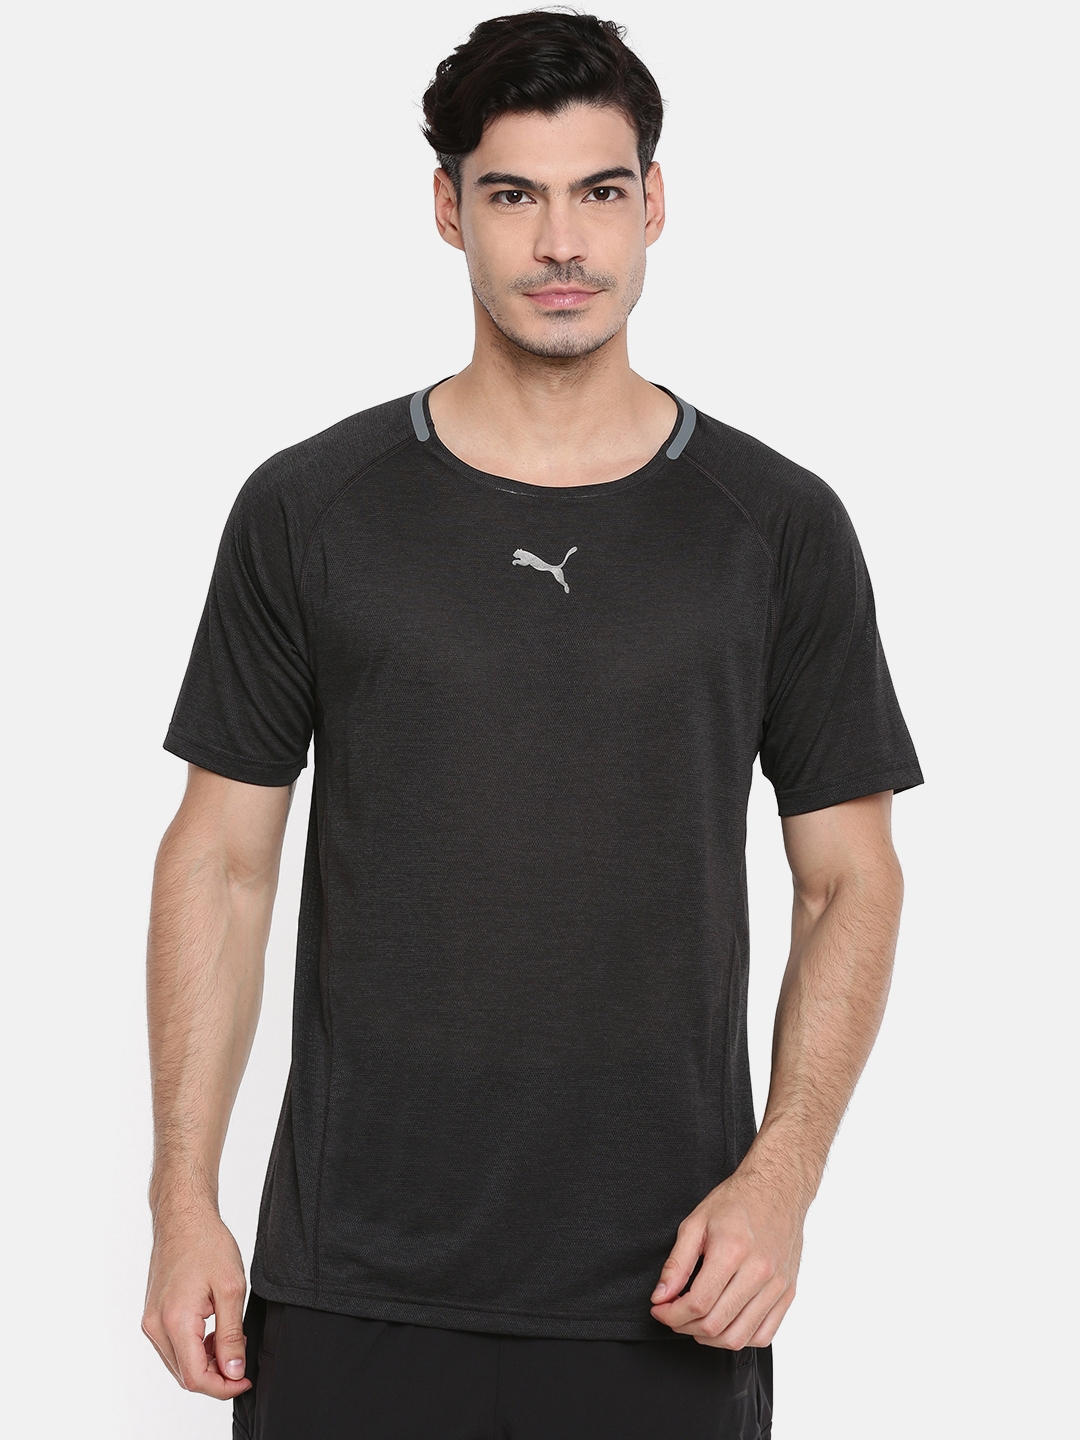 2ae026cf3a5120 Buy Puma Men Black BND Tech SS Solid Round Neck T Shirt - Tshirts ...